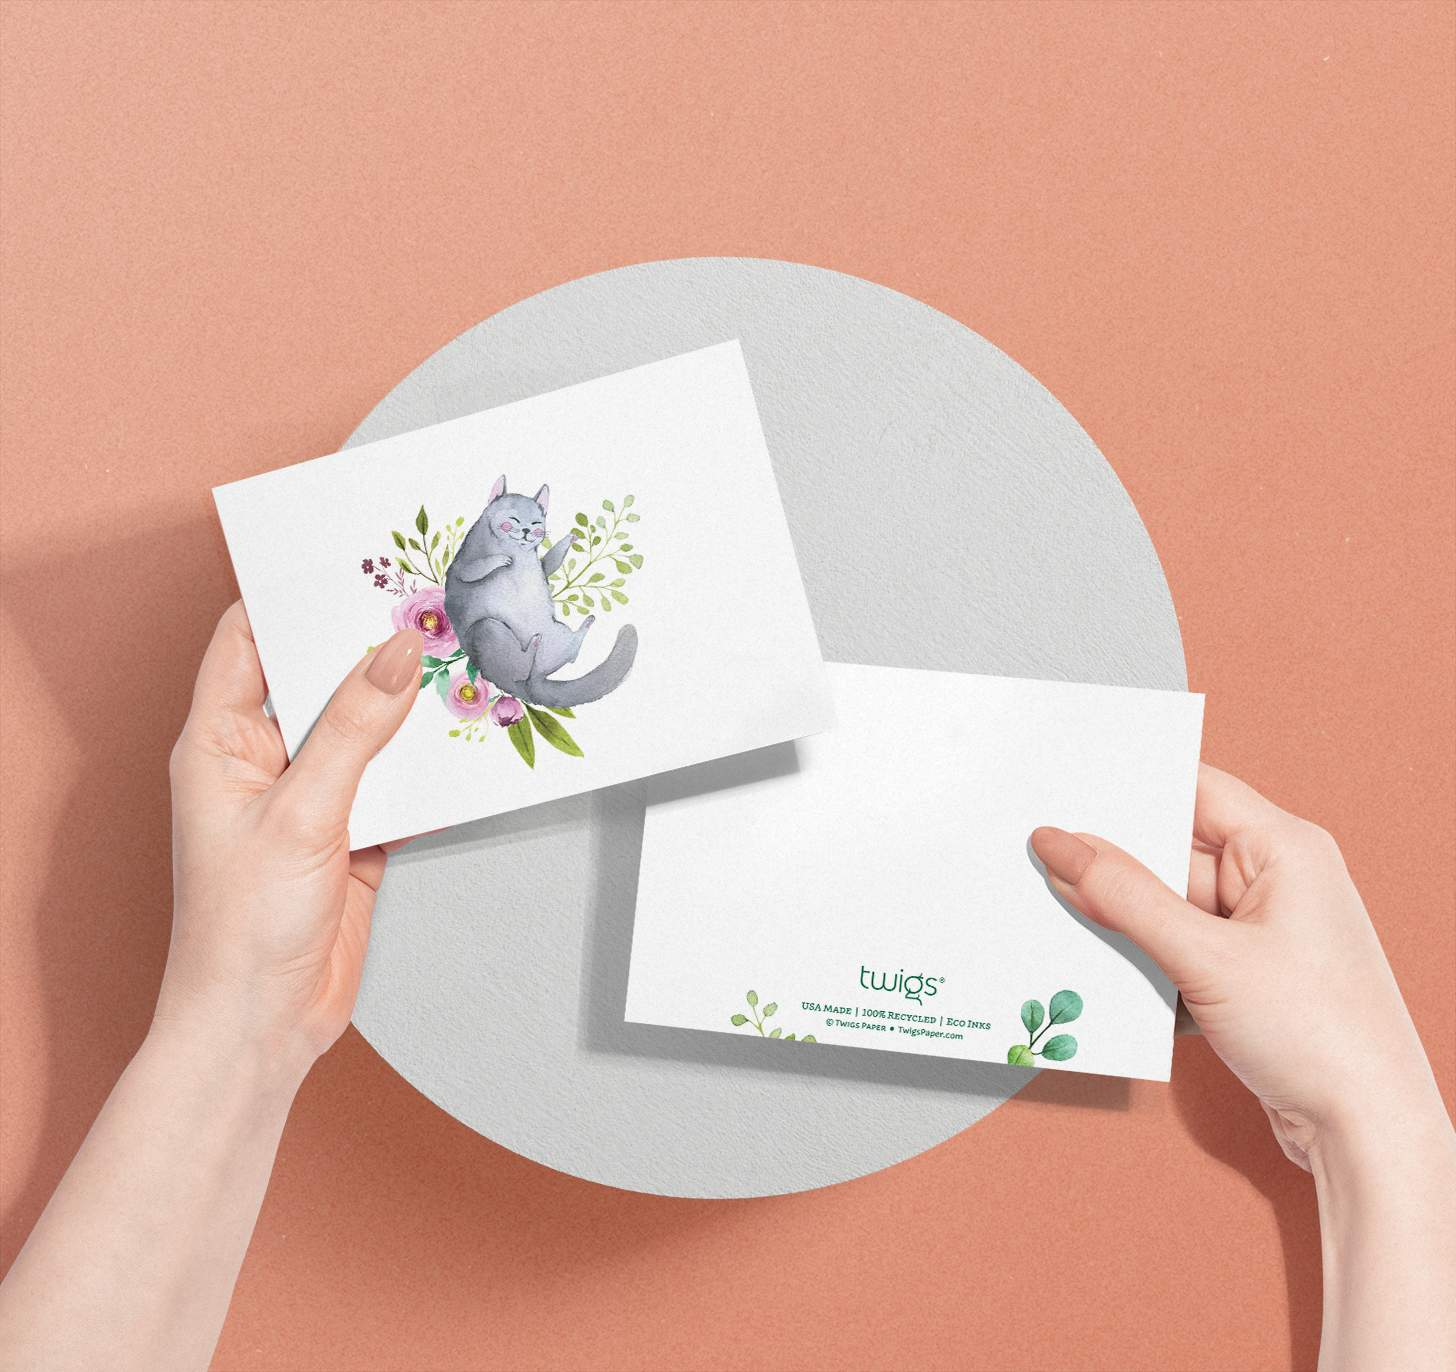 Hands holding Gray cat with flowers design card